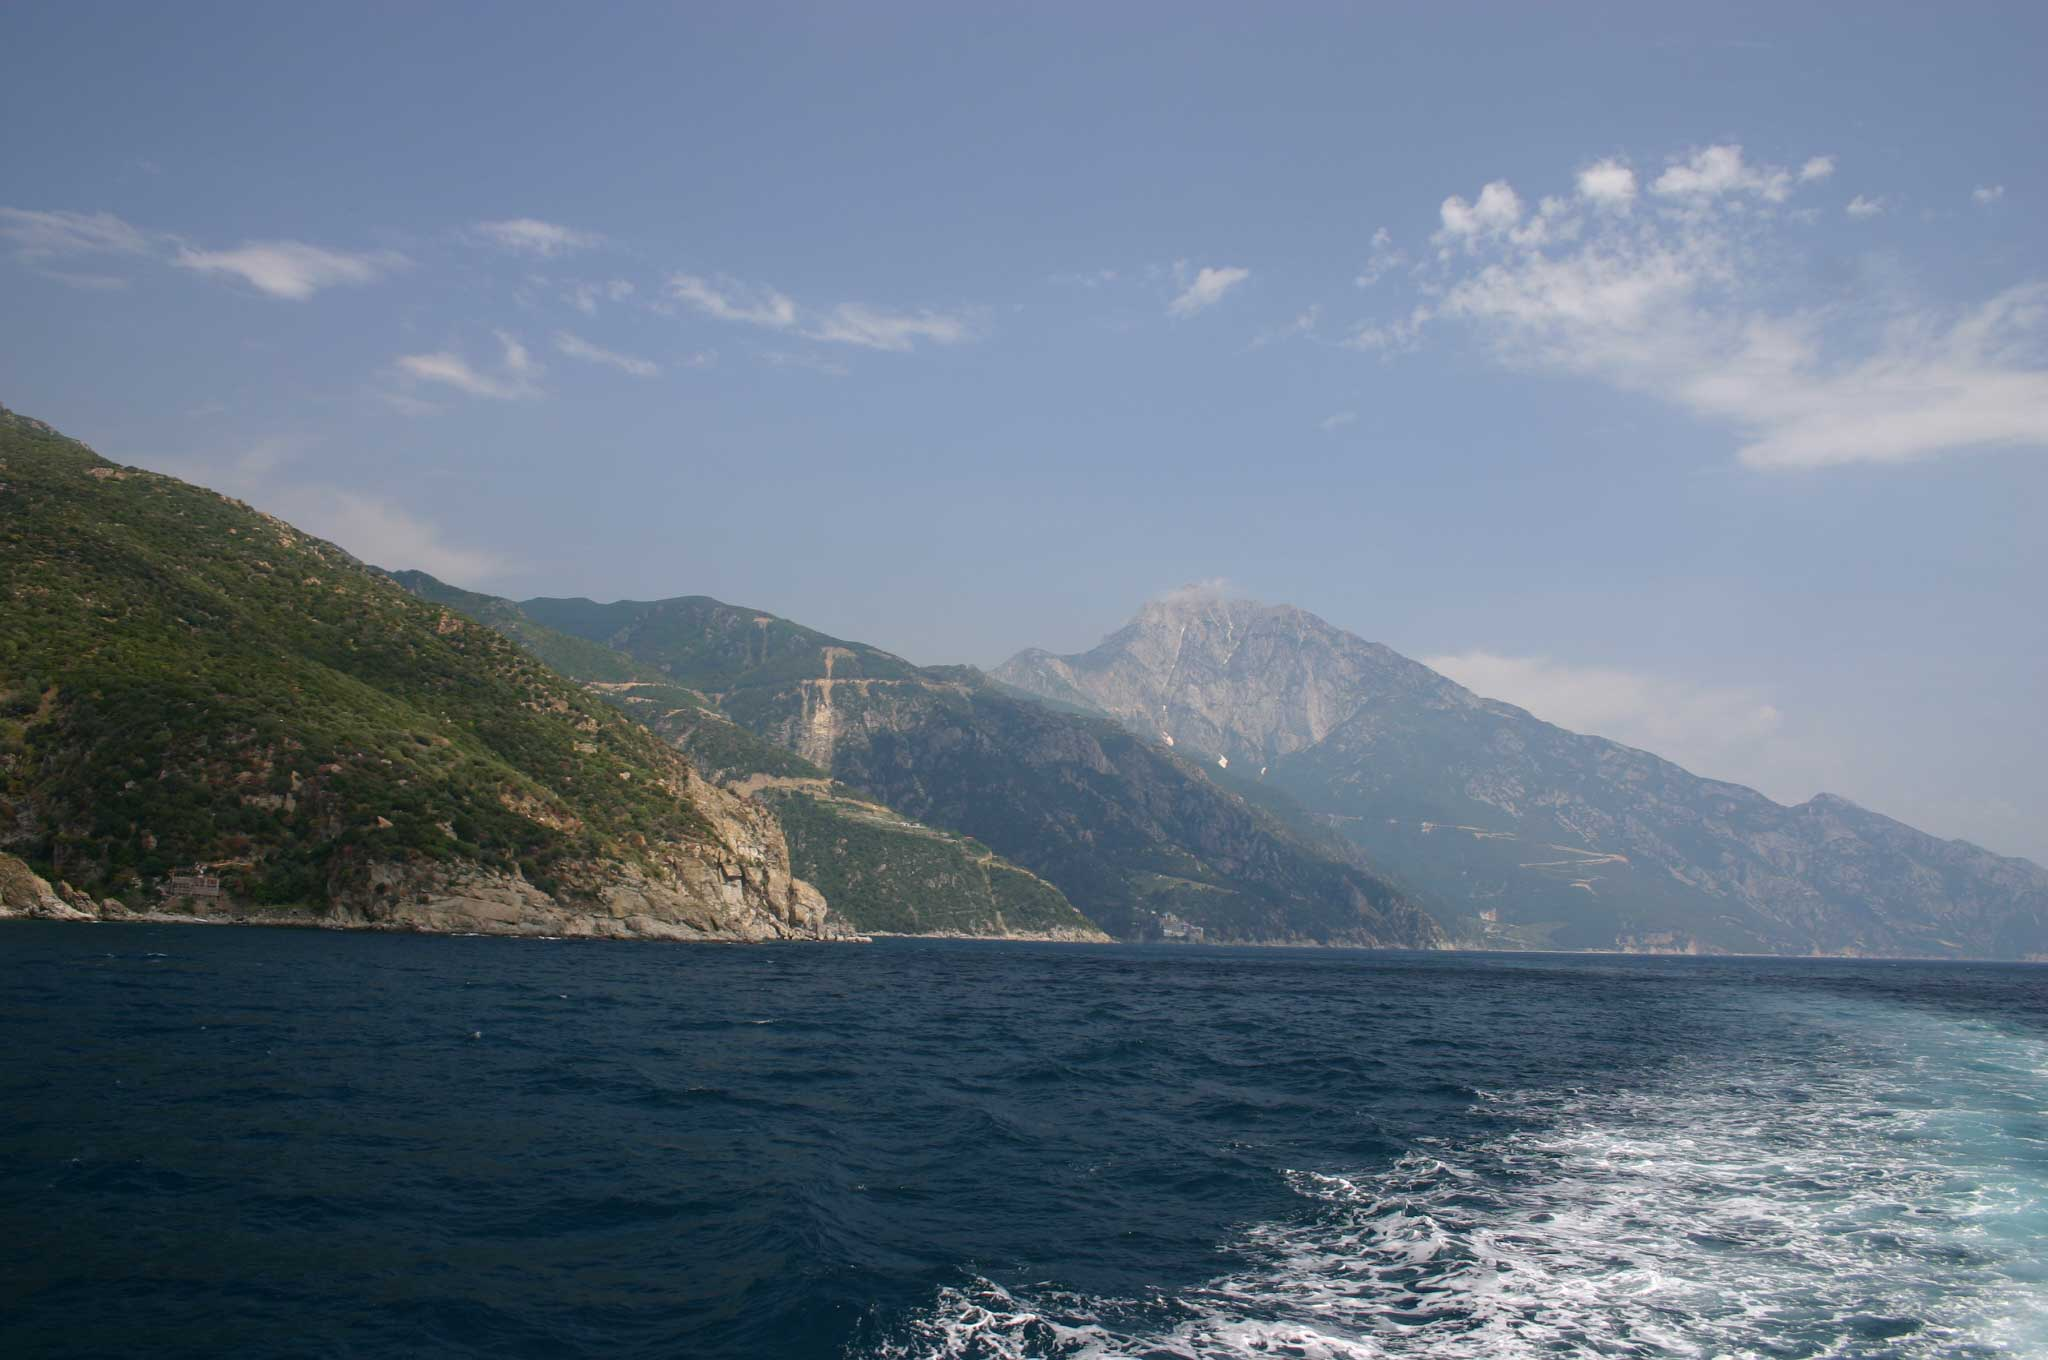 Mt Athos - Back to Athos, From the ferry - © William Mackesy